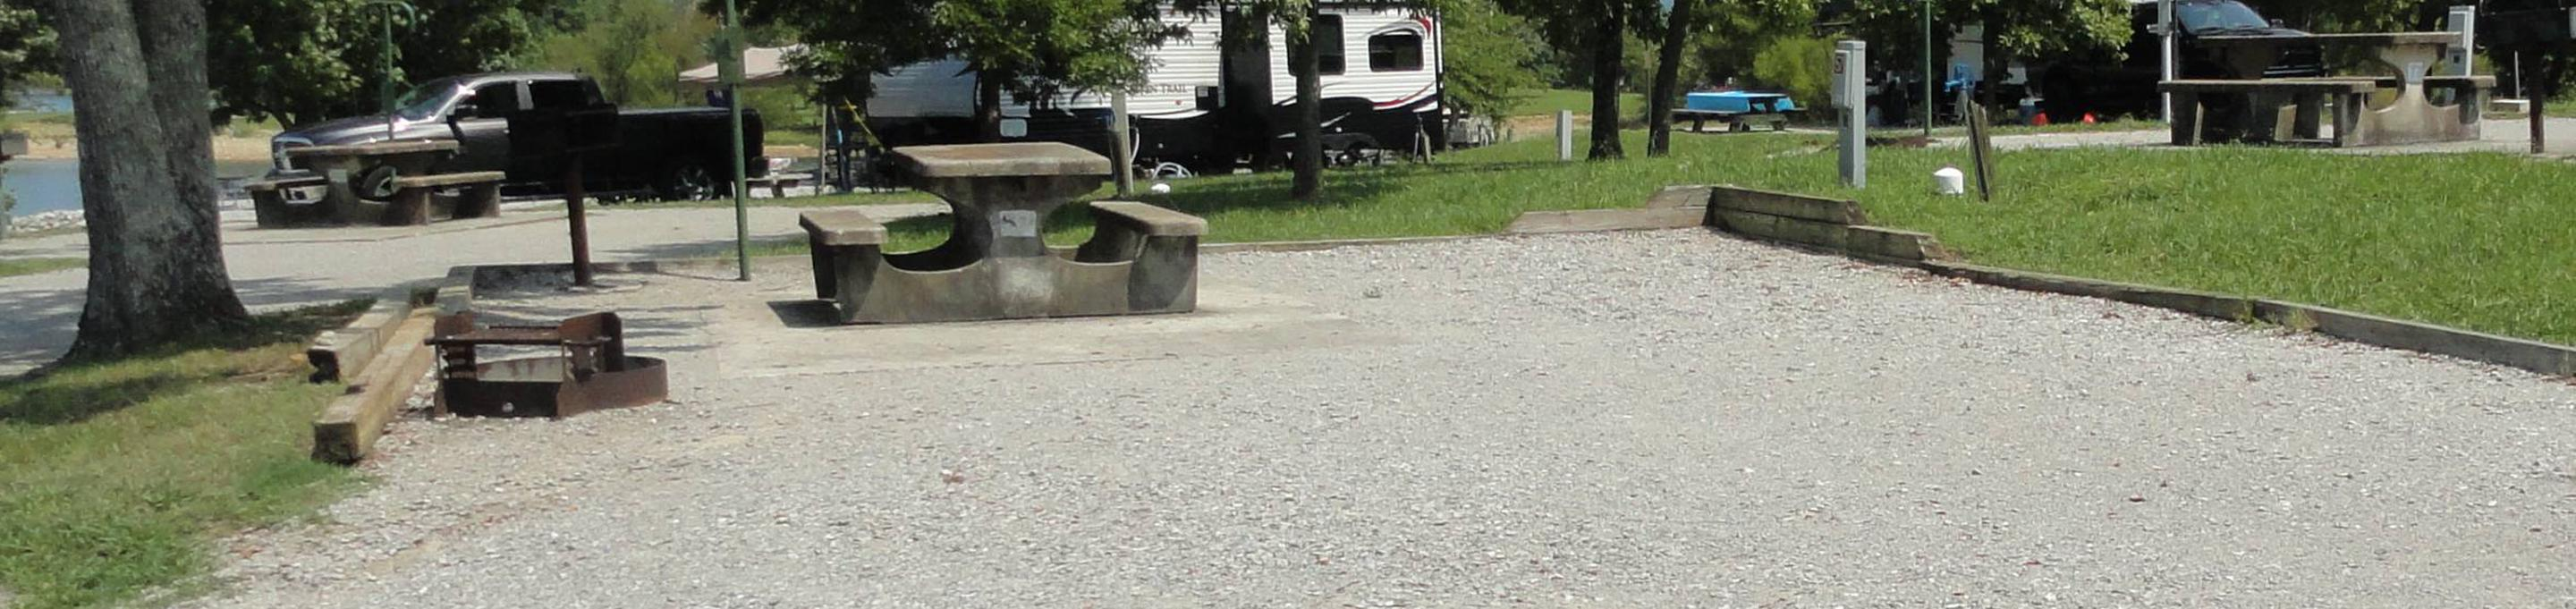 LILLYDALE CAMPGROUND SITE # 57